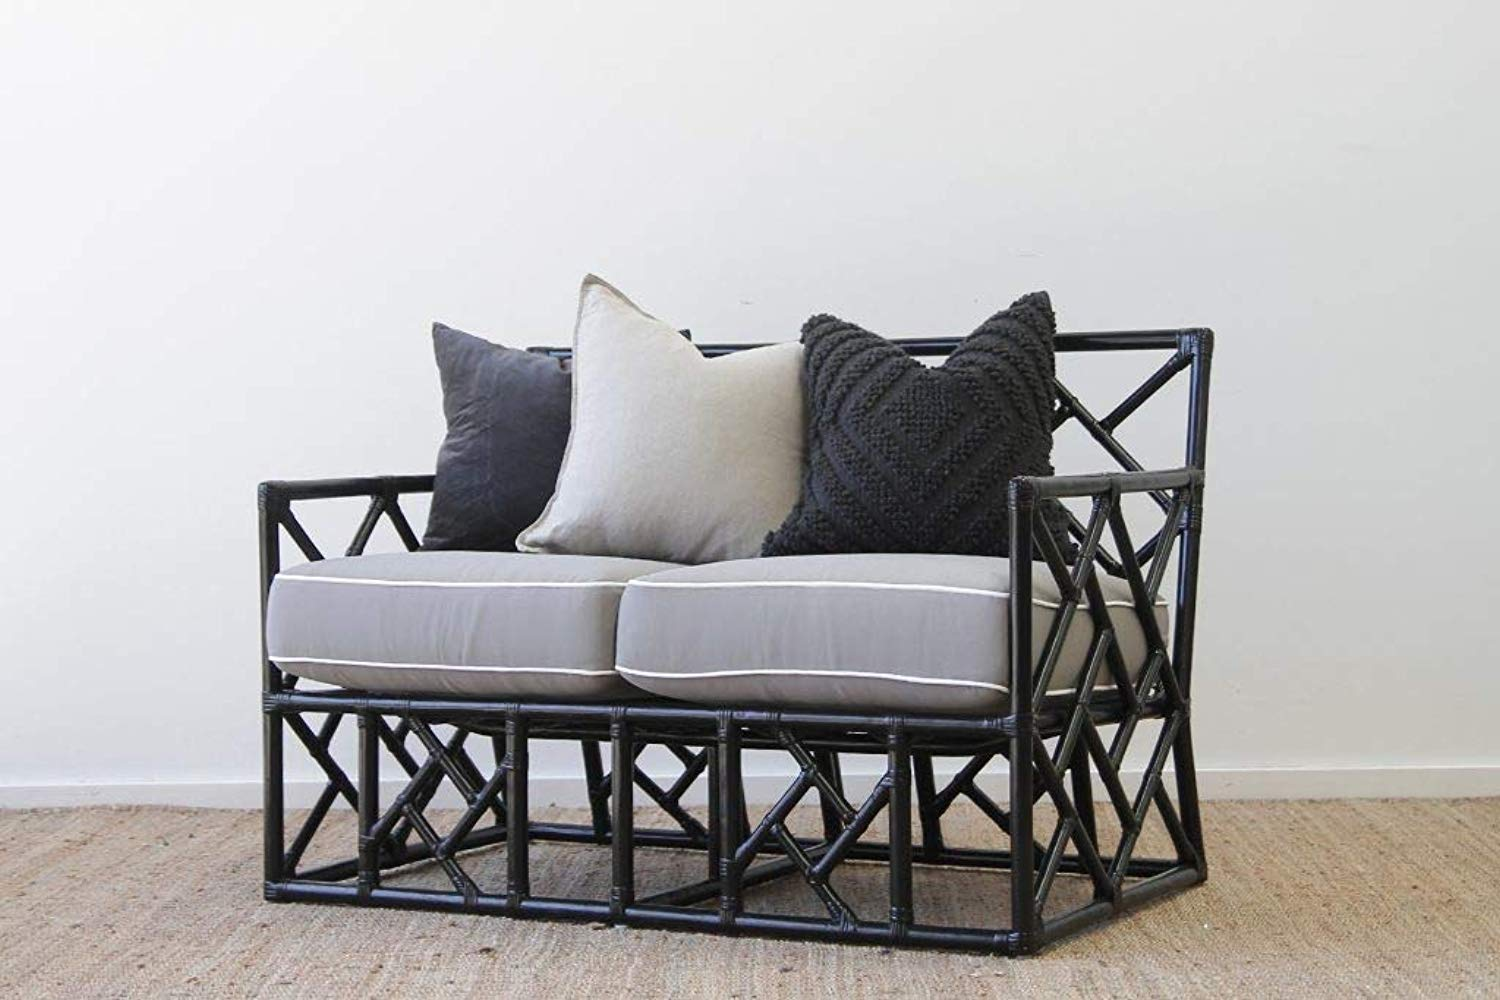 IRA 2 Seater Black sofa set Day Bed - IRA Furniture